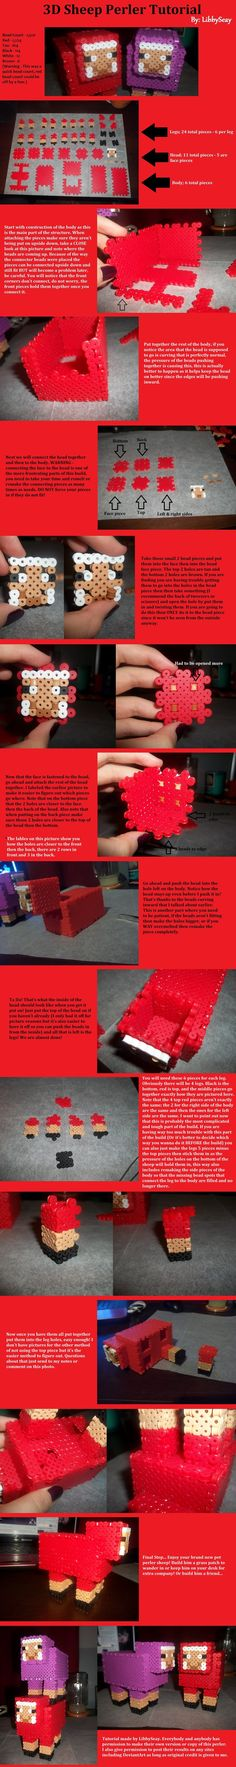 3D Minecraft Sheep Perler Tutorial by Libbyseay on deviantART